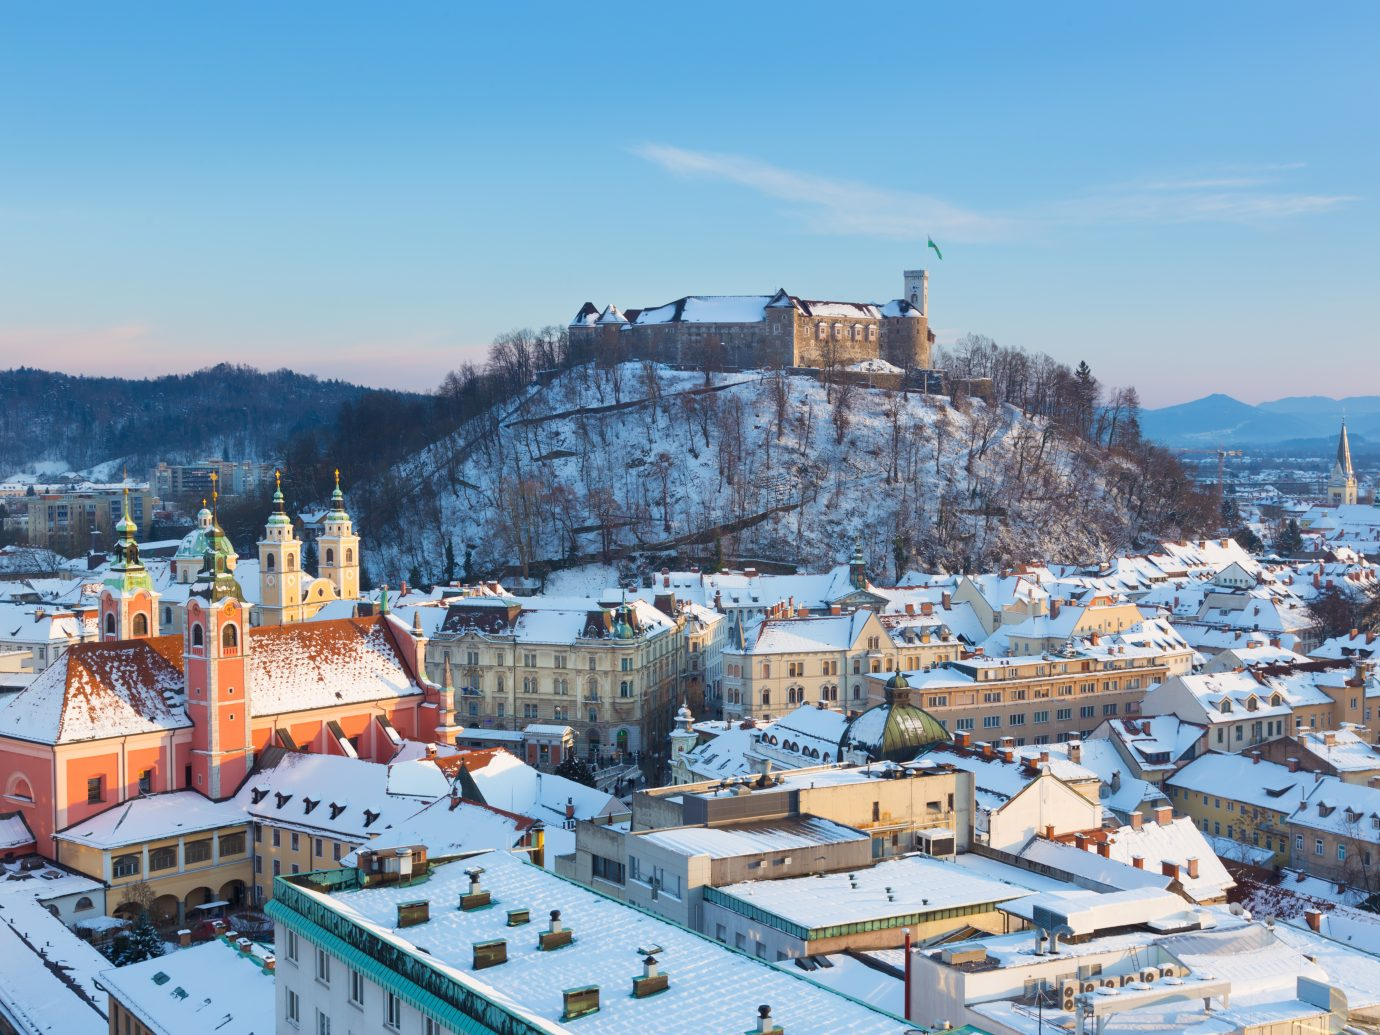 Panoramic view of Ljubljana, capital of Slovenia. Roofs covered in snow in winter time.